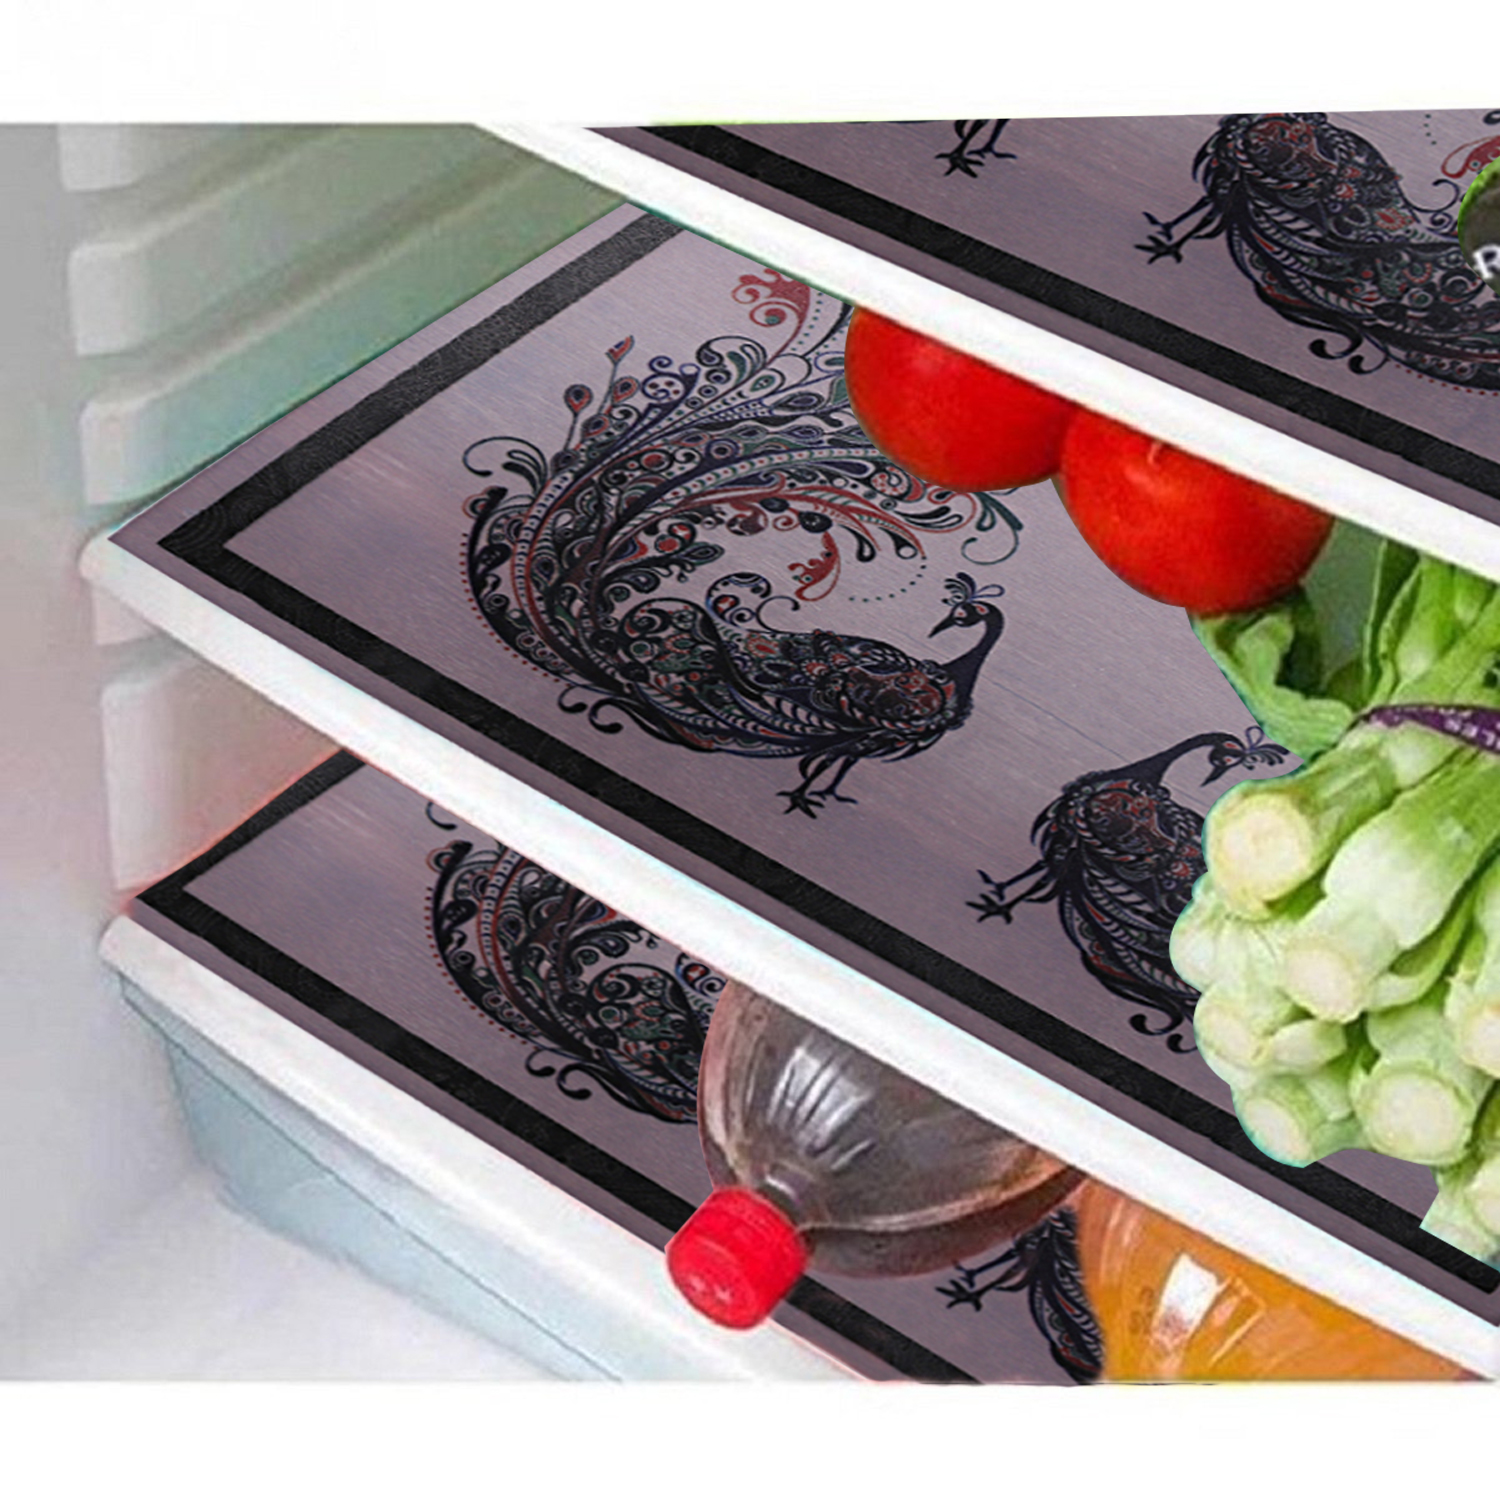 Kuber Industries PVC 6 Pieces Refrigerator Drawer Mats (Multi) -CTKTC8663